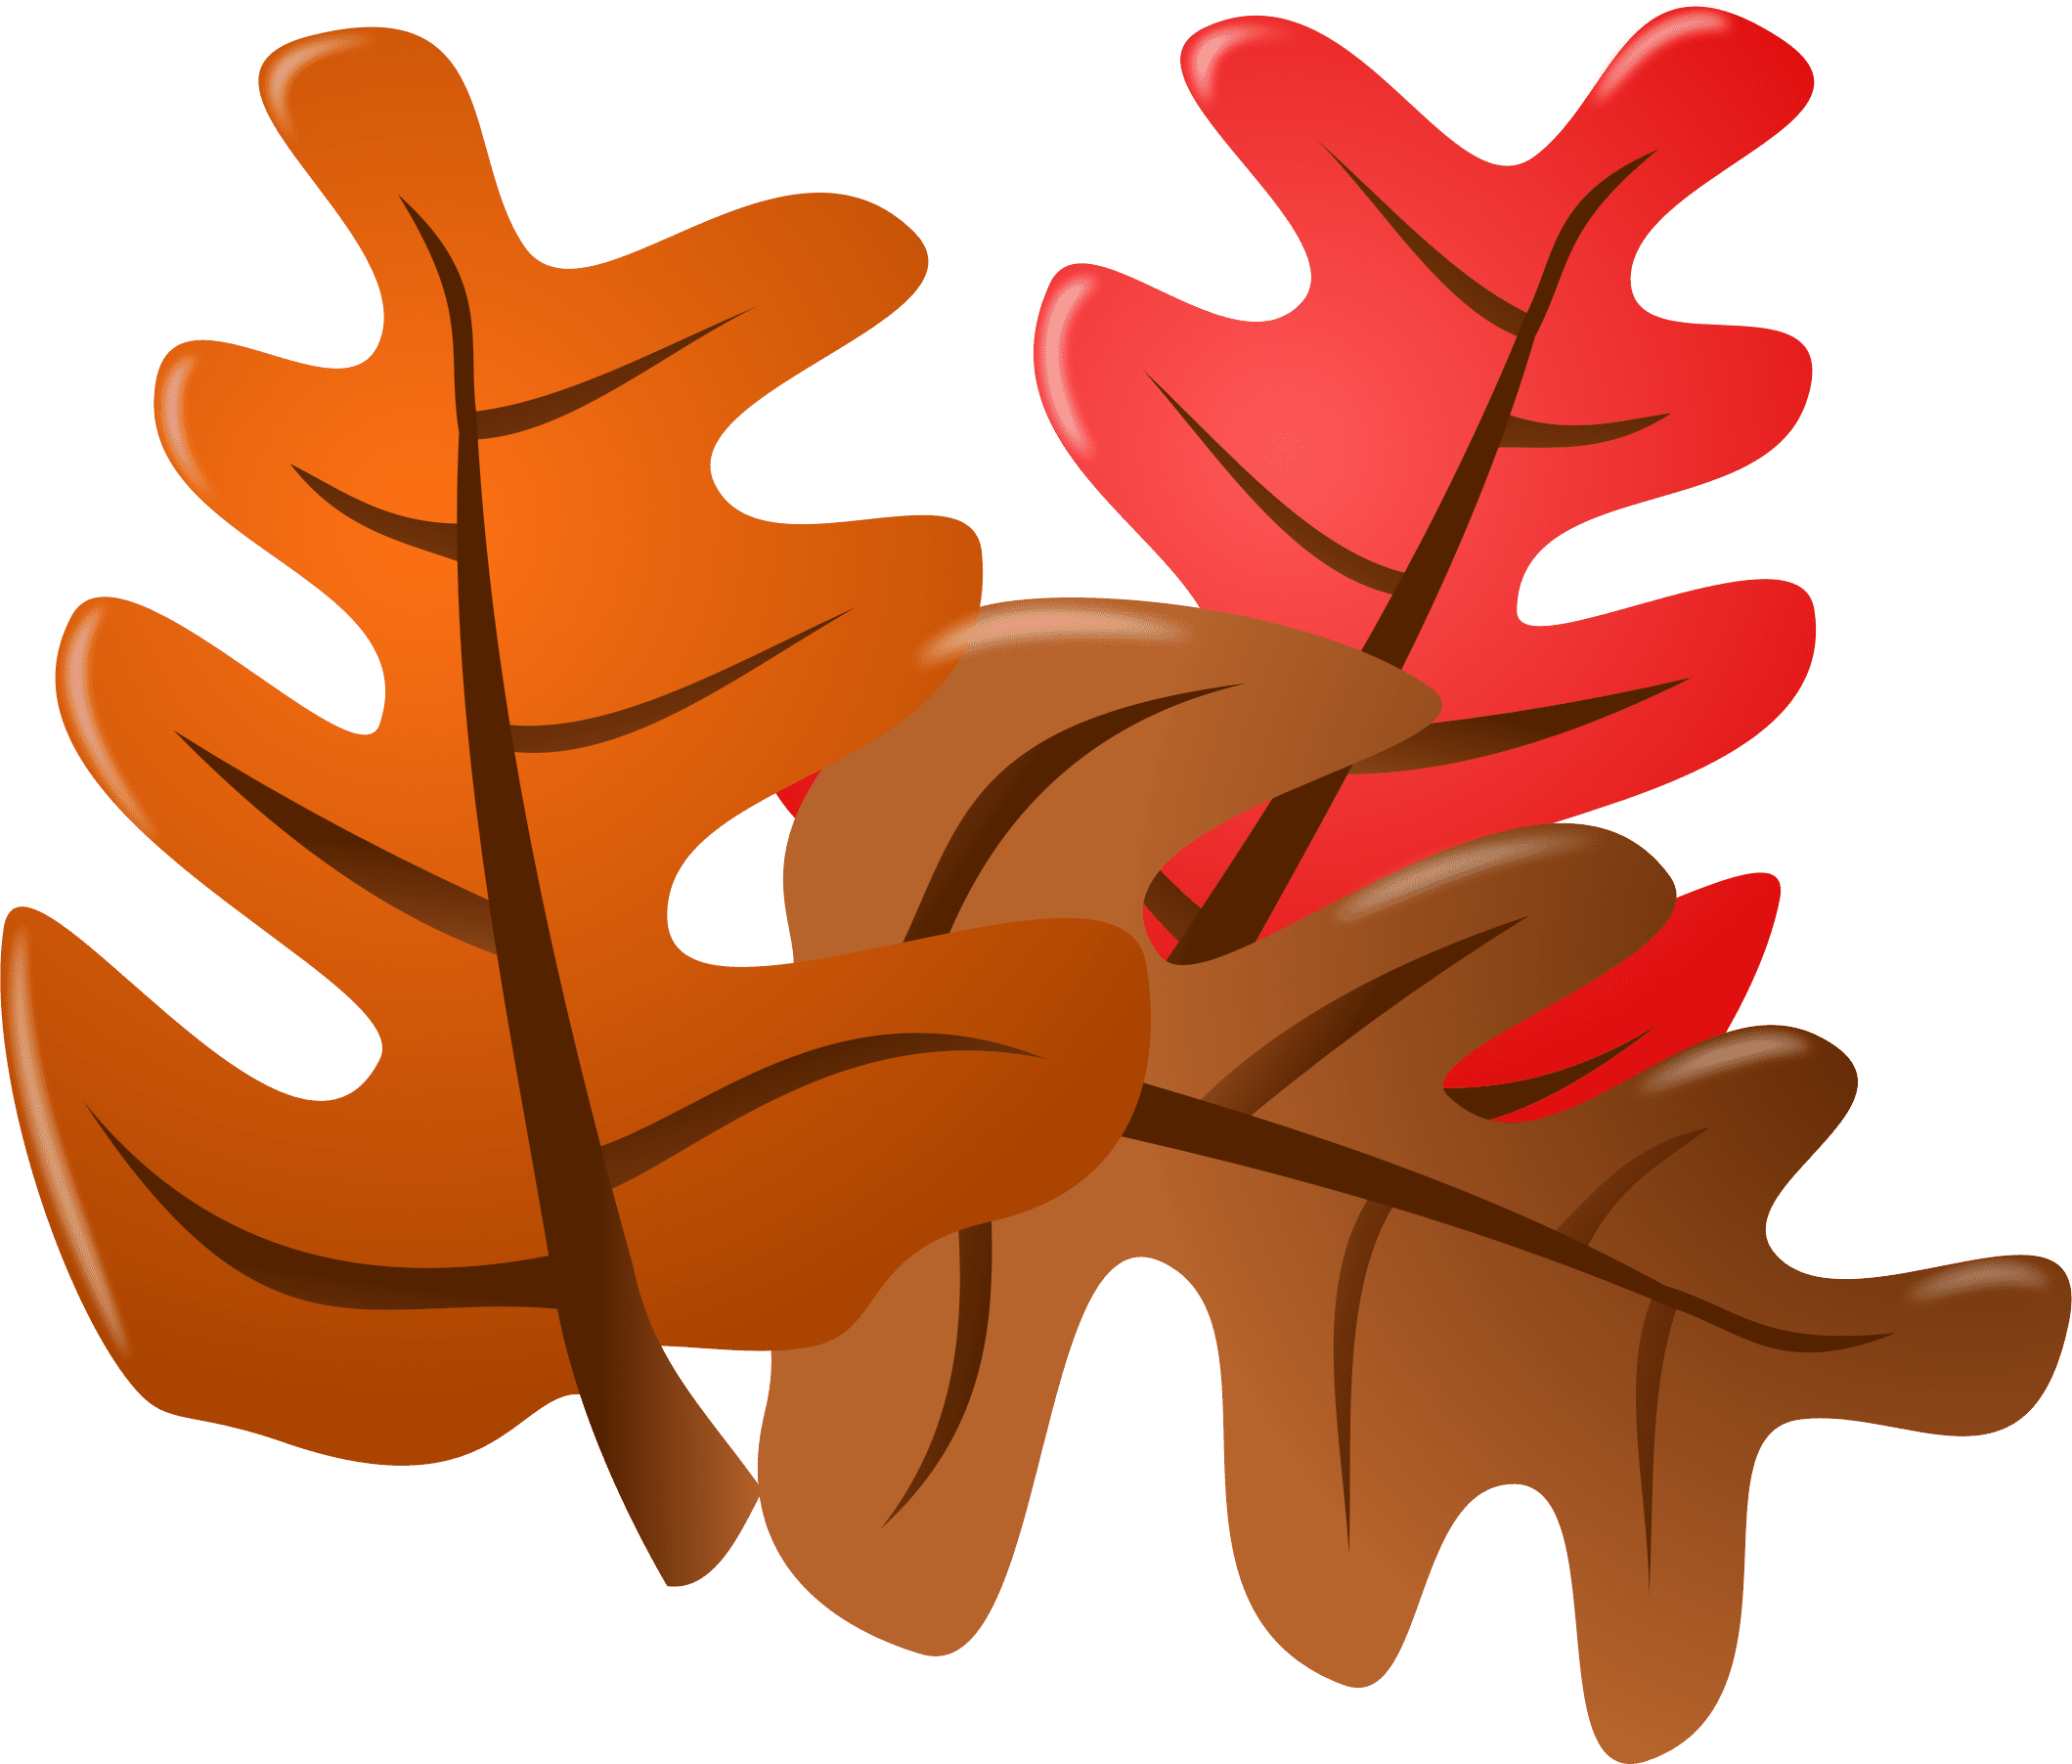 Free autumn and fall. Leaf clipart apple tree svg royalty free library